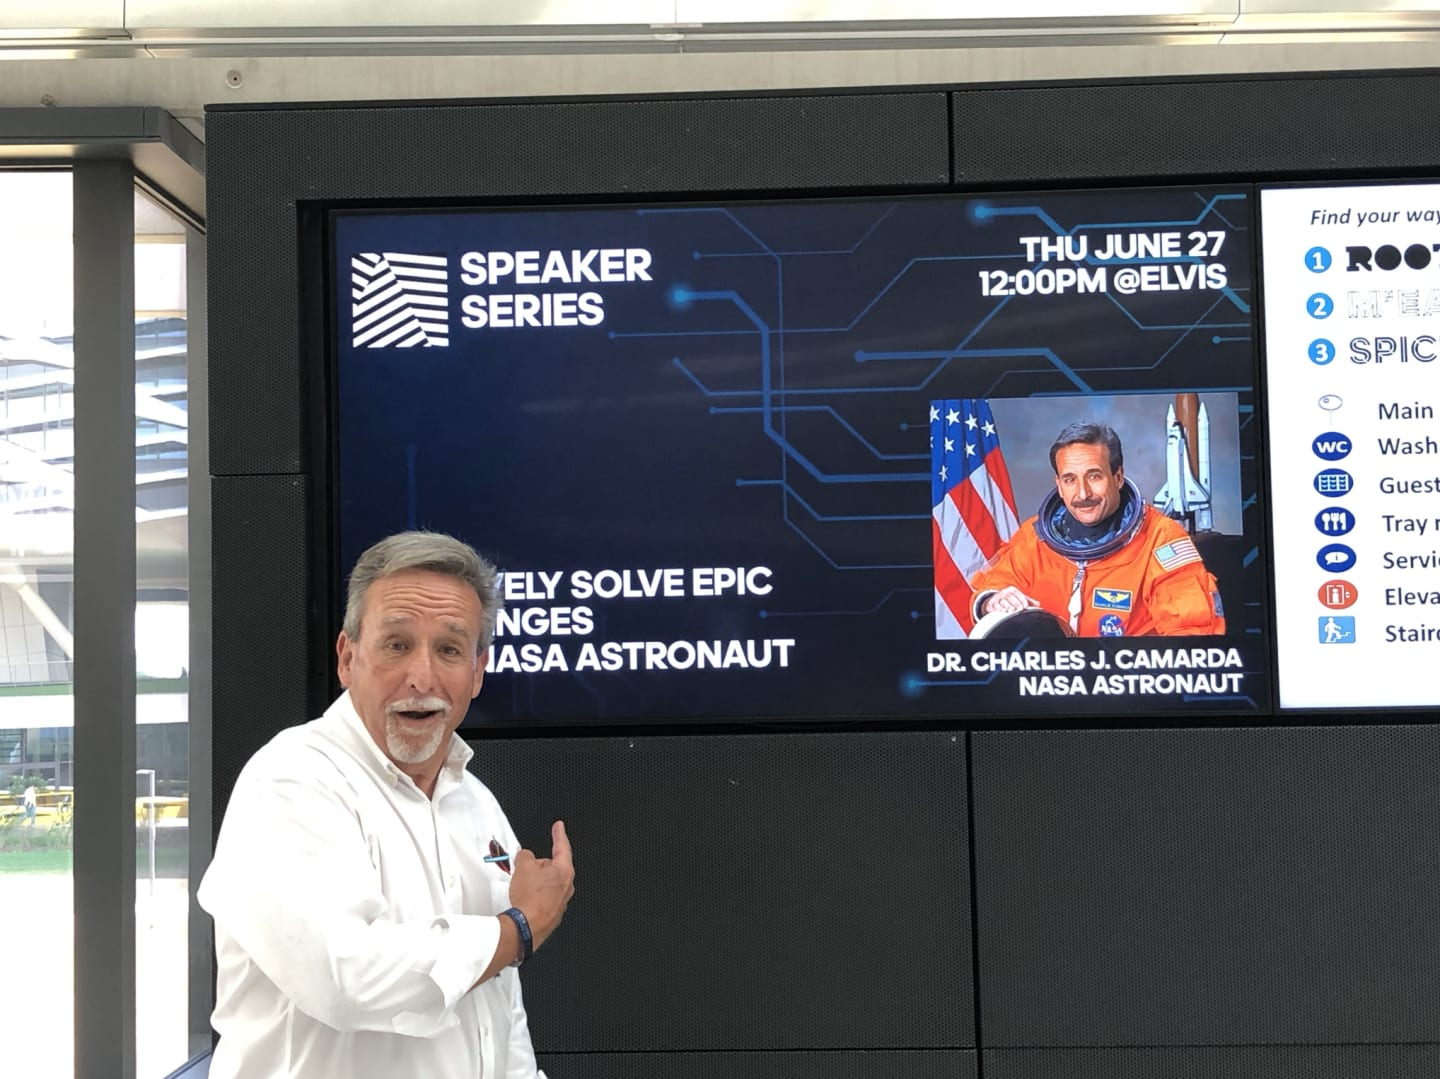 Charlie Camarda NASA Astronaut Photo in conversation at adidas headquarter.diversity, innovation, creativity, team work, GamePlanA